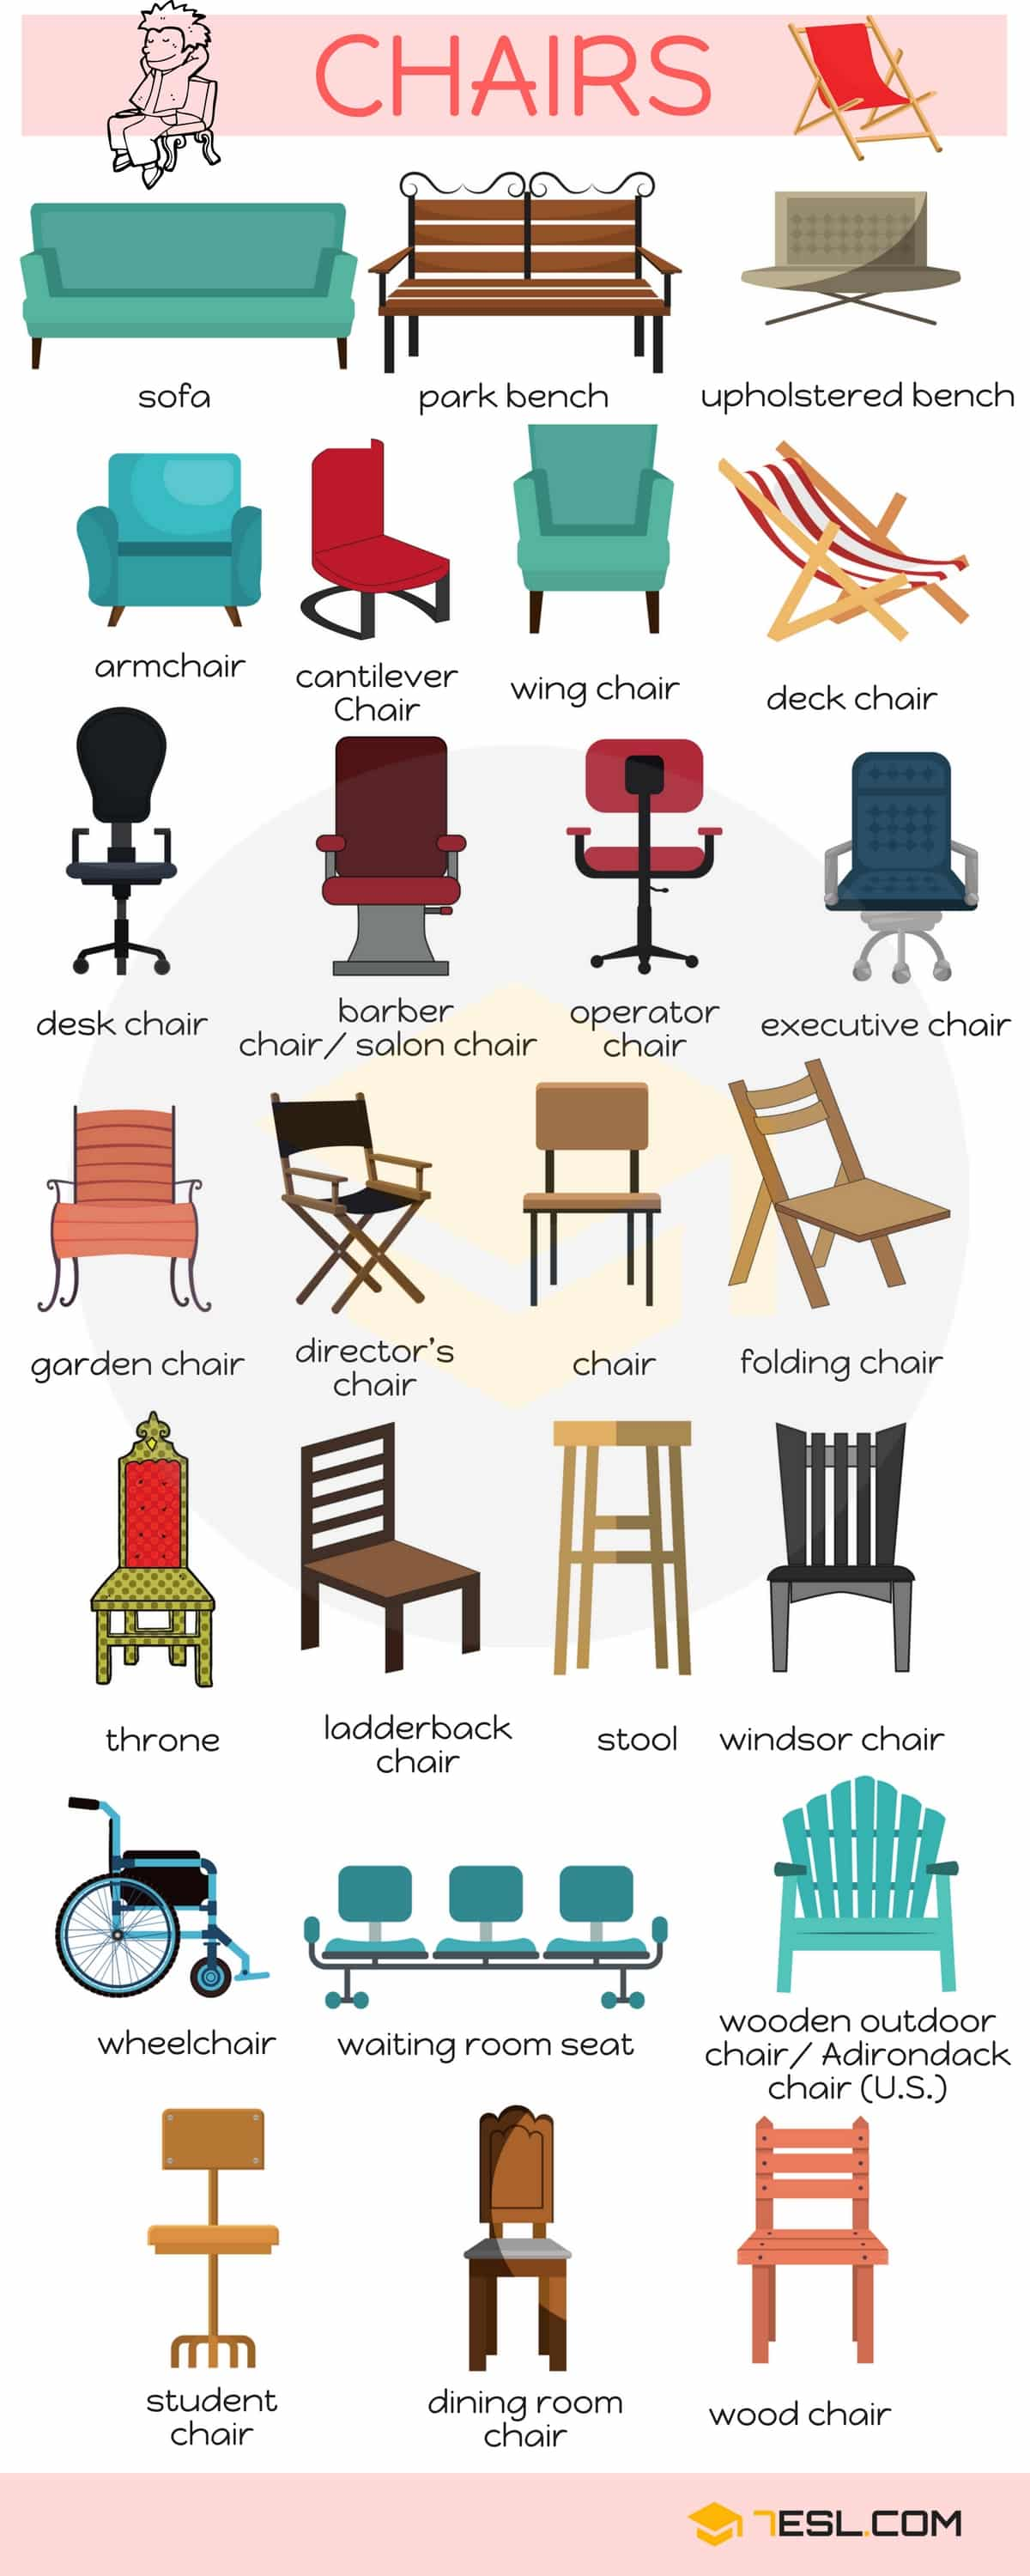 Styles Of Chairs Types Of Chairs List Of Chair Styles With Names 7 E S L